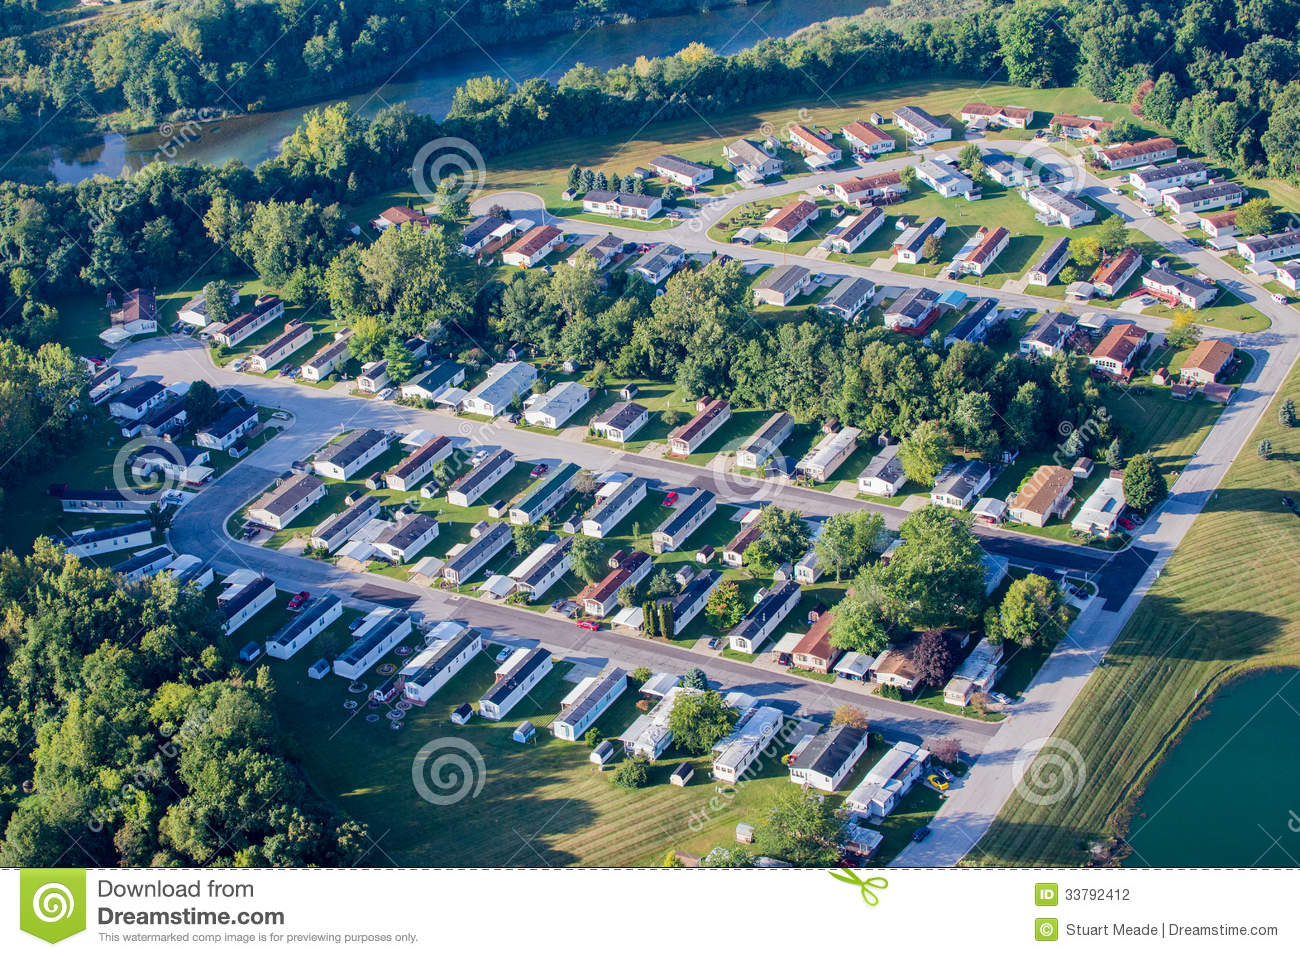 mobile homes parks with Stock Photography Trailer Park Neighborhood Aerial Photo Well Kept Modern River Indiana Image33792412 on 327453001 as well Straende additionally Catalog3 moreover Stock Photography Trailer Park Neighborhood Aerial Photo Well Kept Modern River Indiana Image33792412 in addition 17 Fresh Mobile Home Park Design.